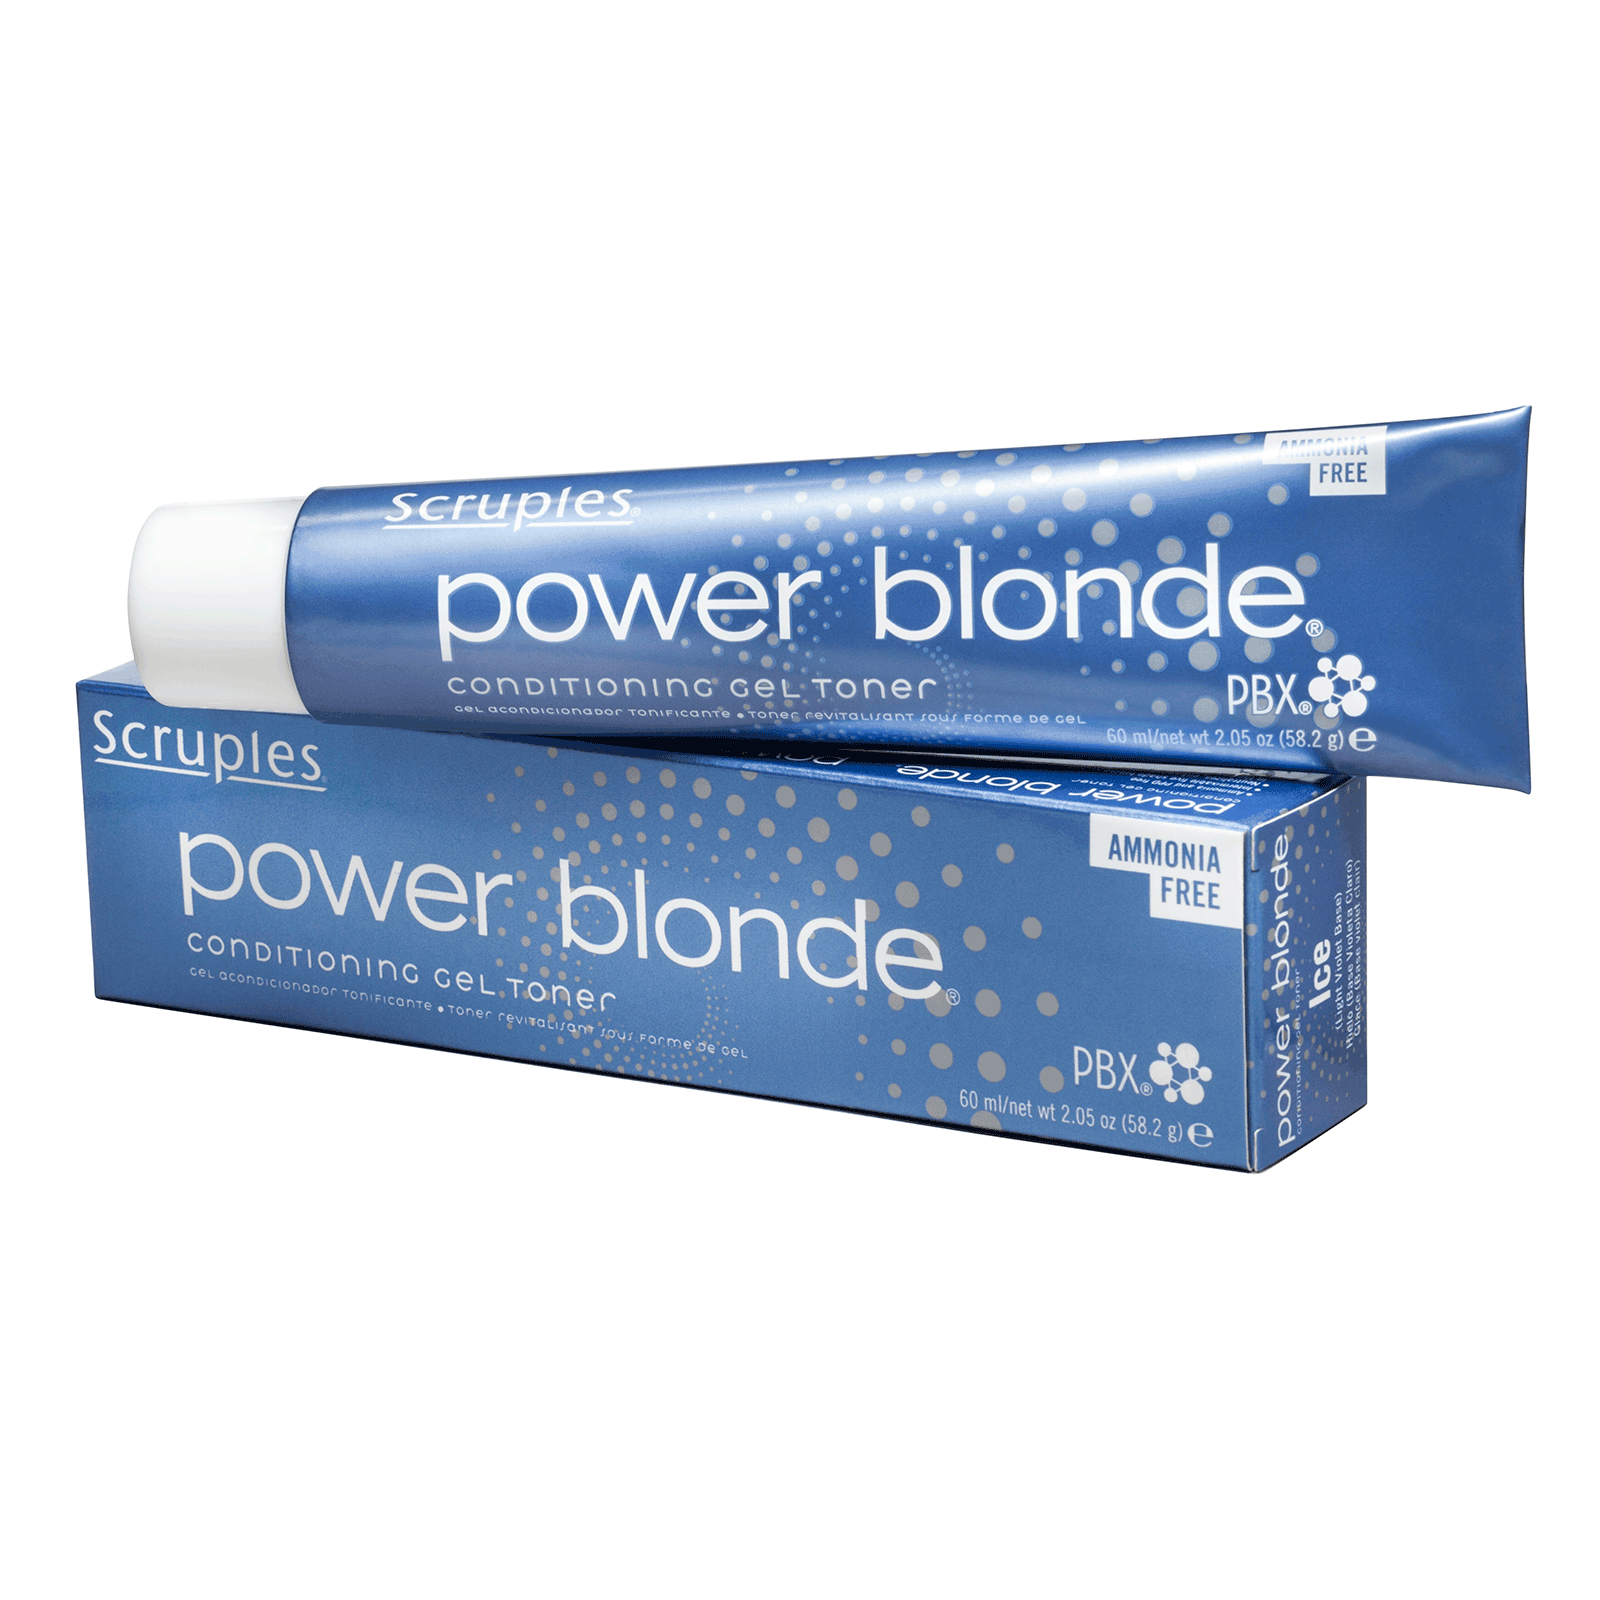 Power Blonde Conditioning Gel Toner - Cosmo